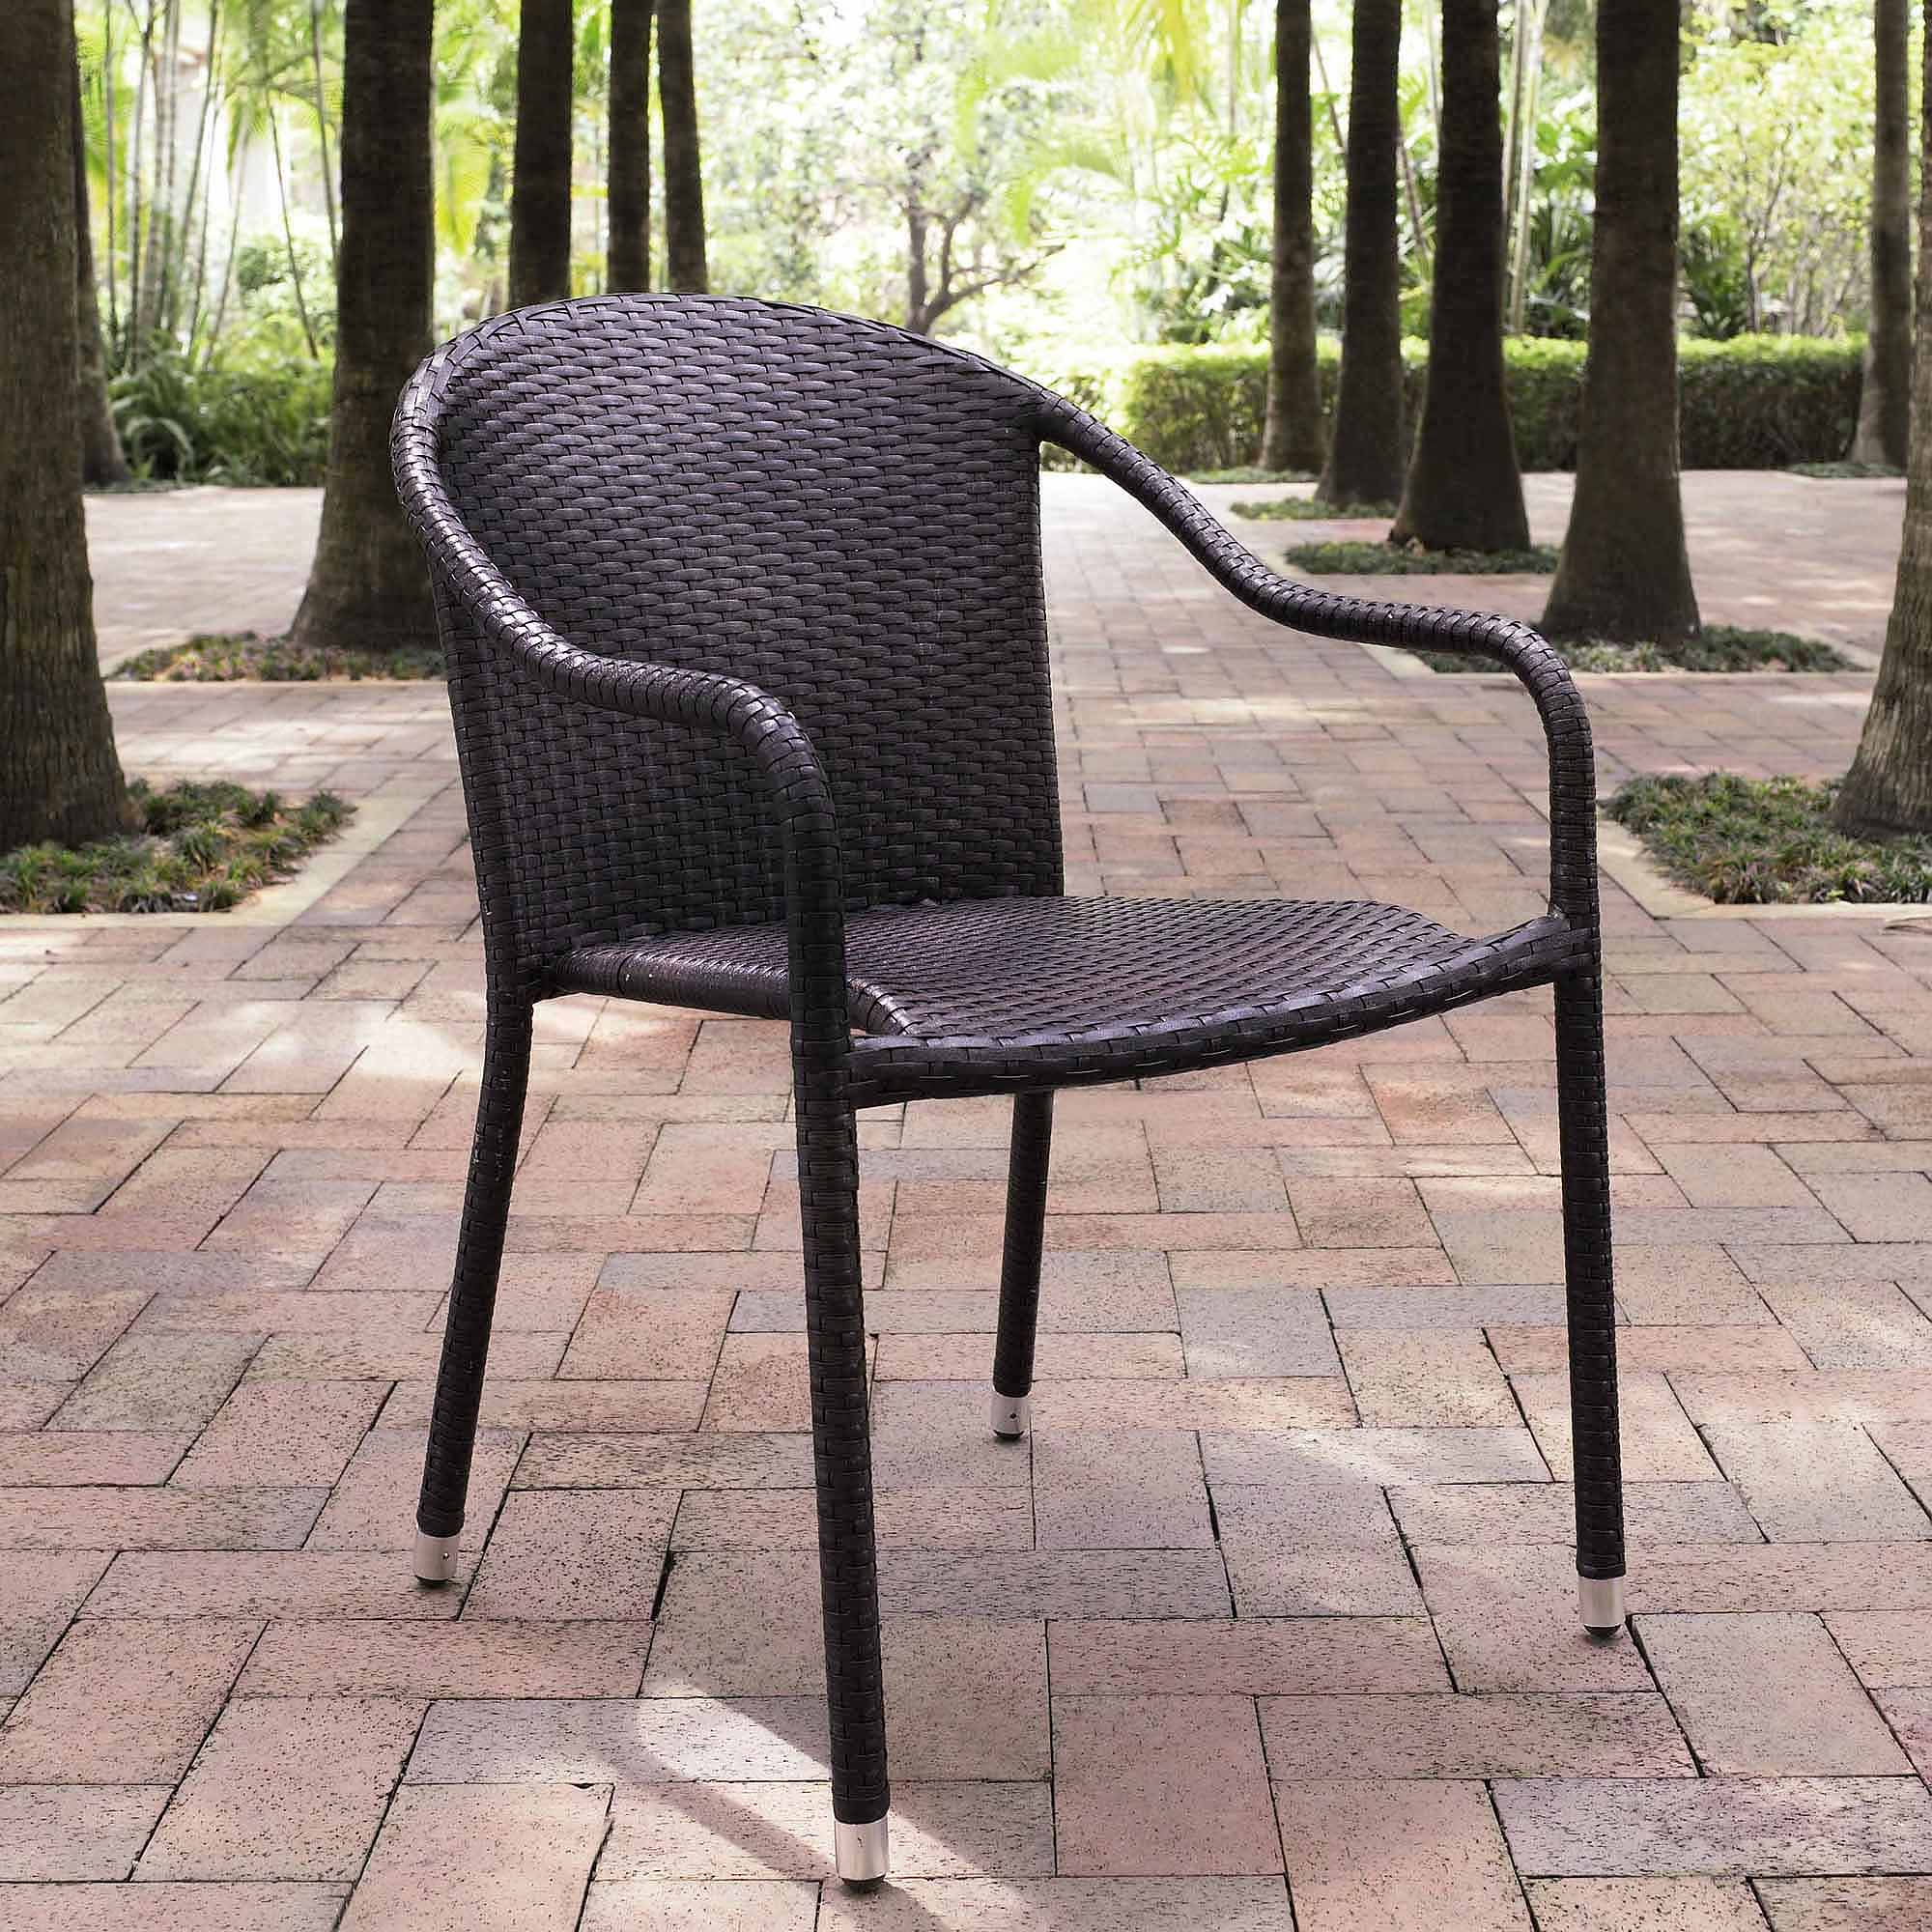 Crosley Furniture Palm Harbor Outdoor Wicker Stackable Chairs 4pk